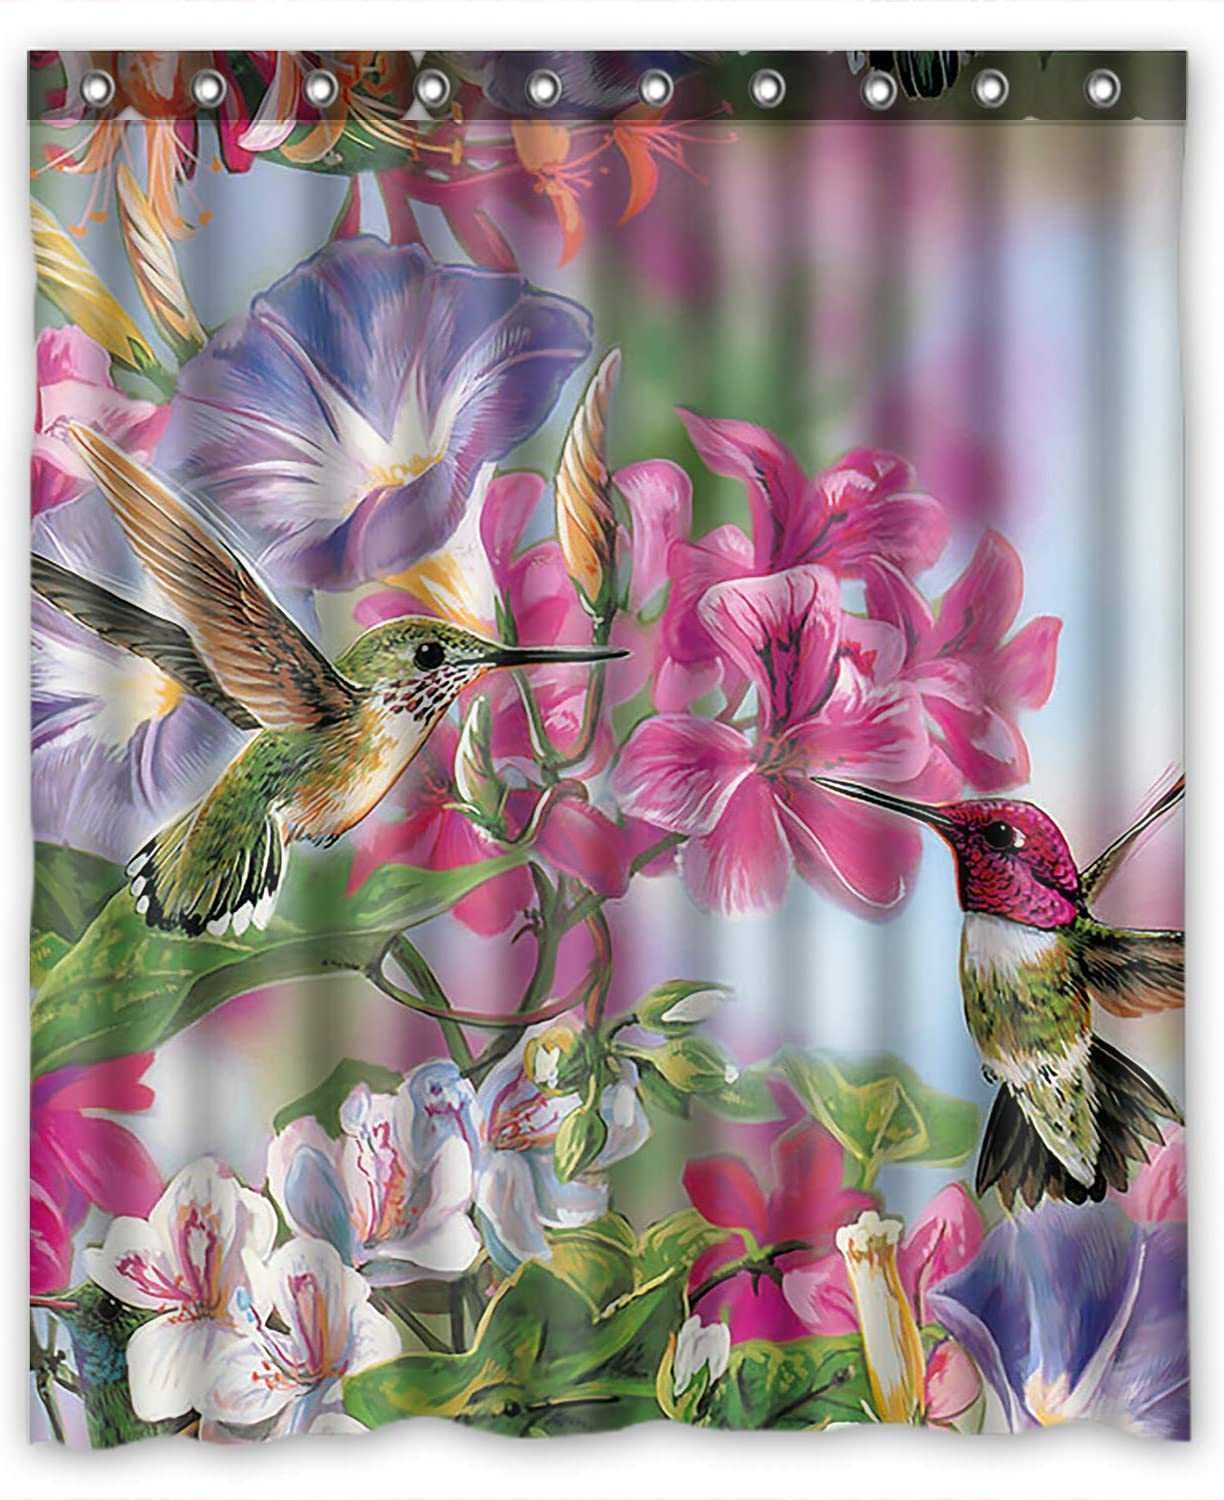 150 X 180 cm Shower Curtains Hummingbird Watercolor Bathroom Decoration Cozy Lovely Decor Bathroom Fabric Bathroom Decor Set with Hooks Shower Curtain 60 X 70 Inchs